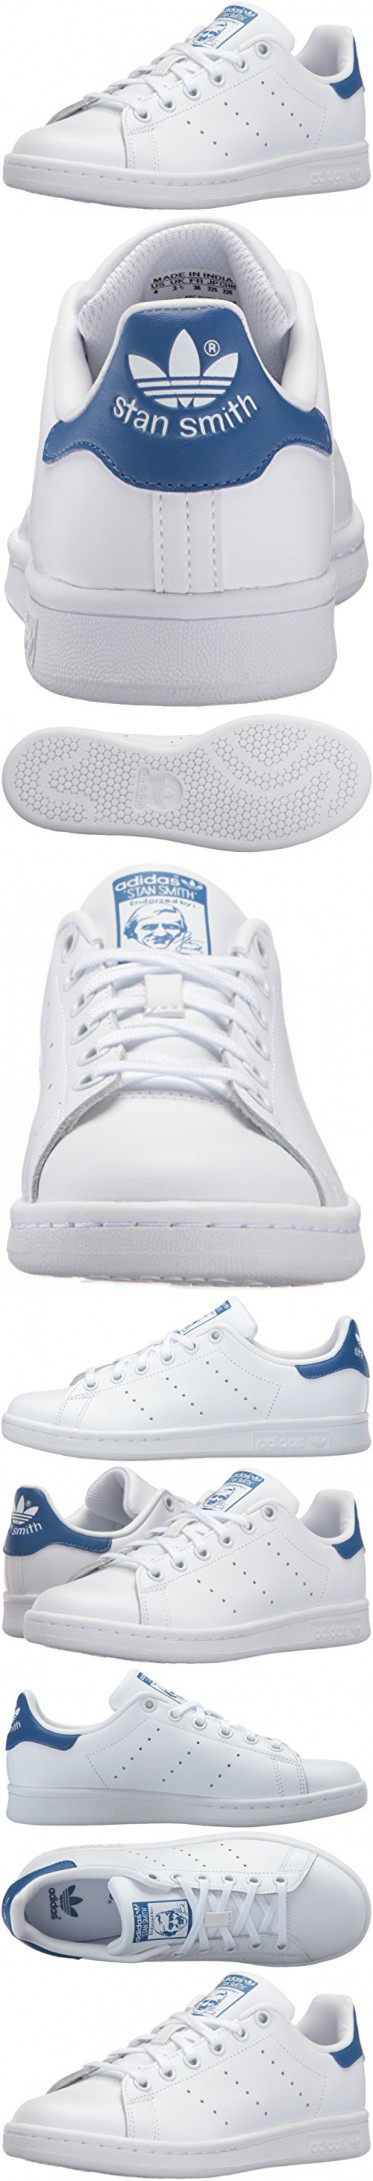 5e50d8cba03 Adidas Originals Boys  Stan Smith J Skate Shoe